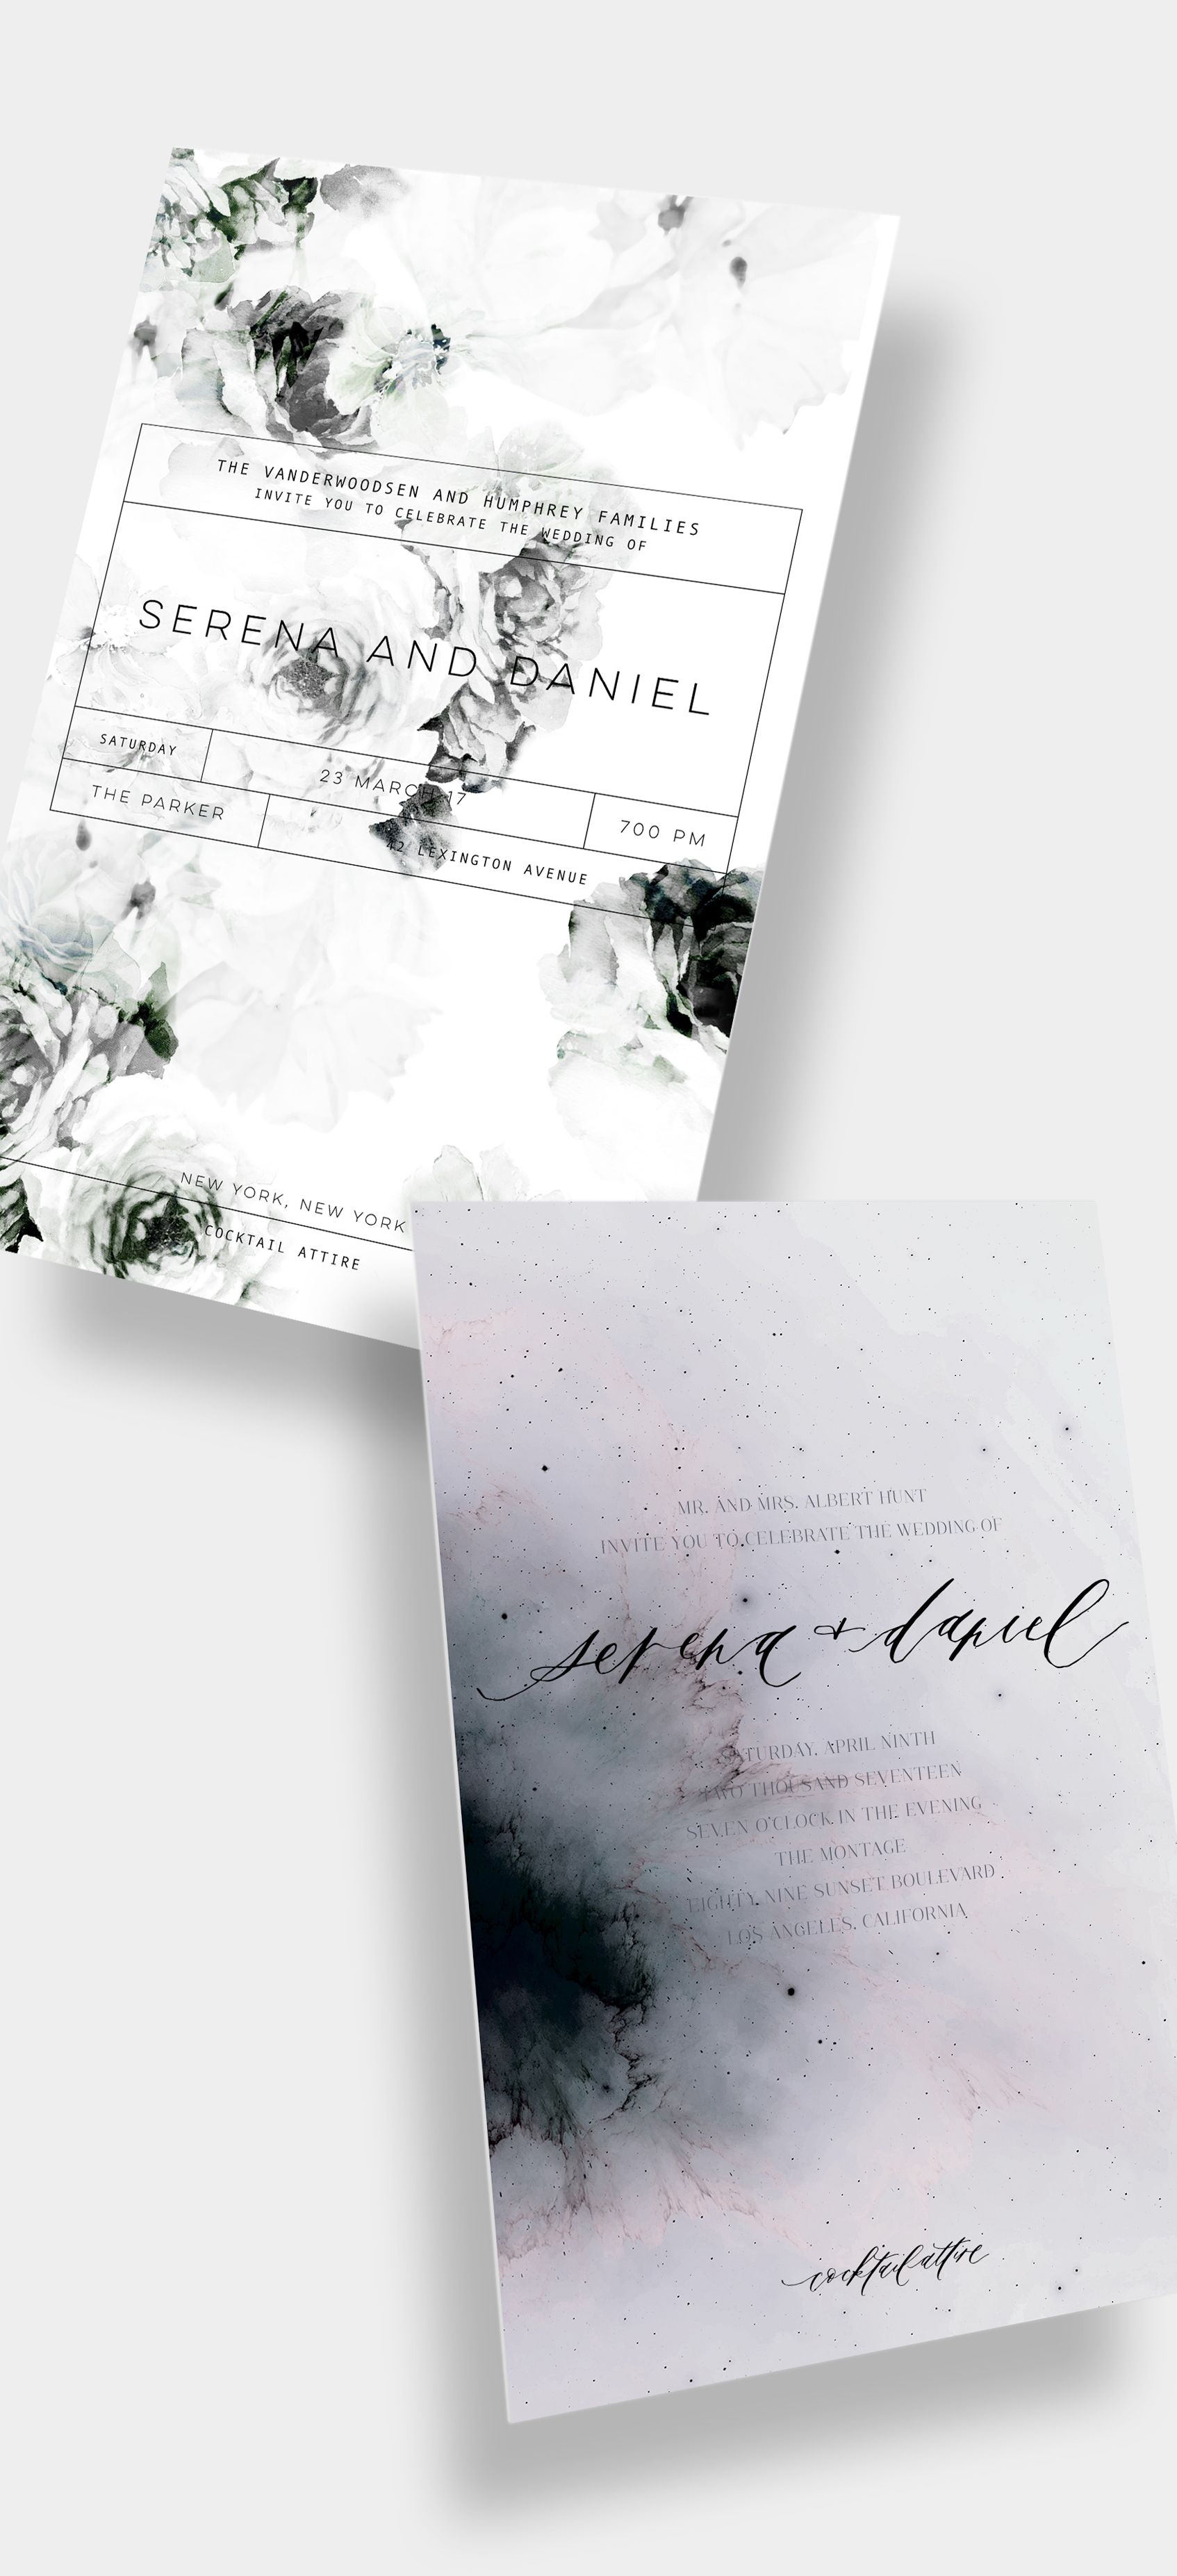 modern and unique invitations and save the dates for weddings and events customize or design your own suite from scratch and choose from hundreds of prints